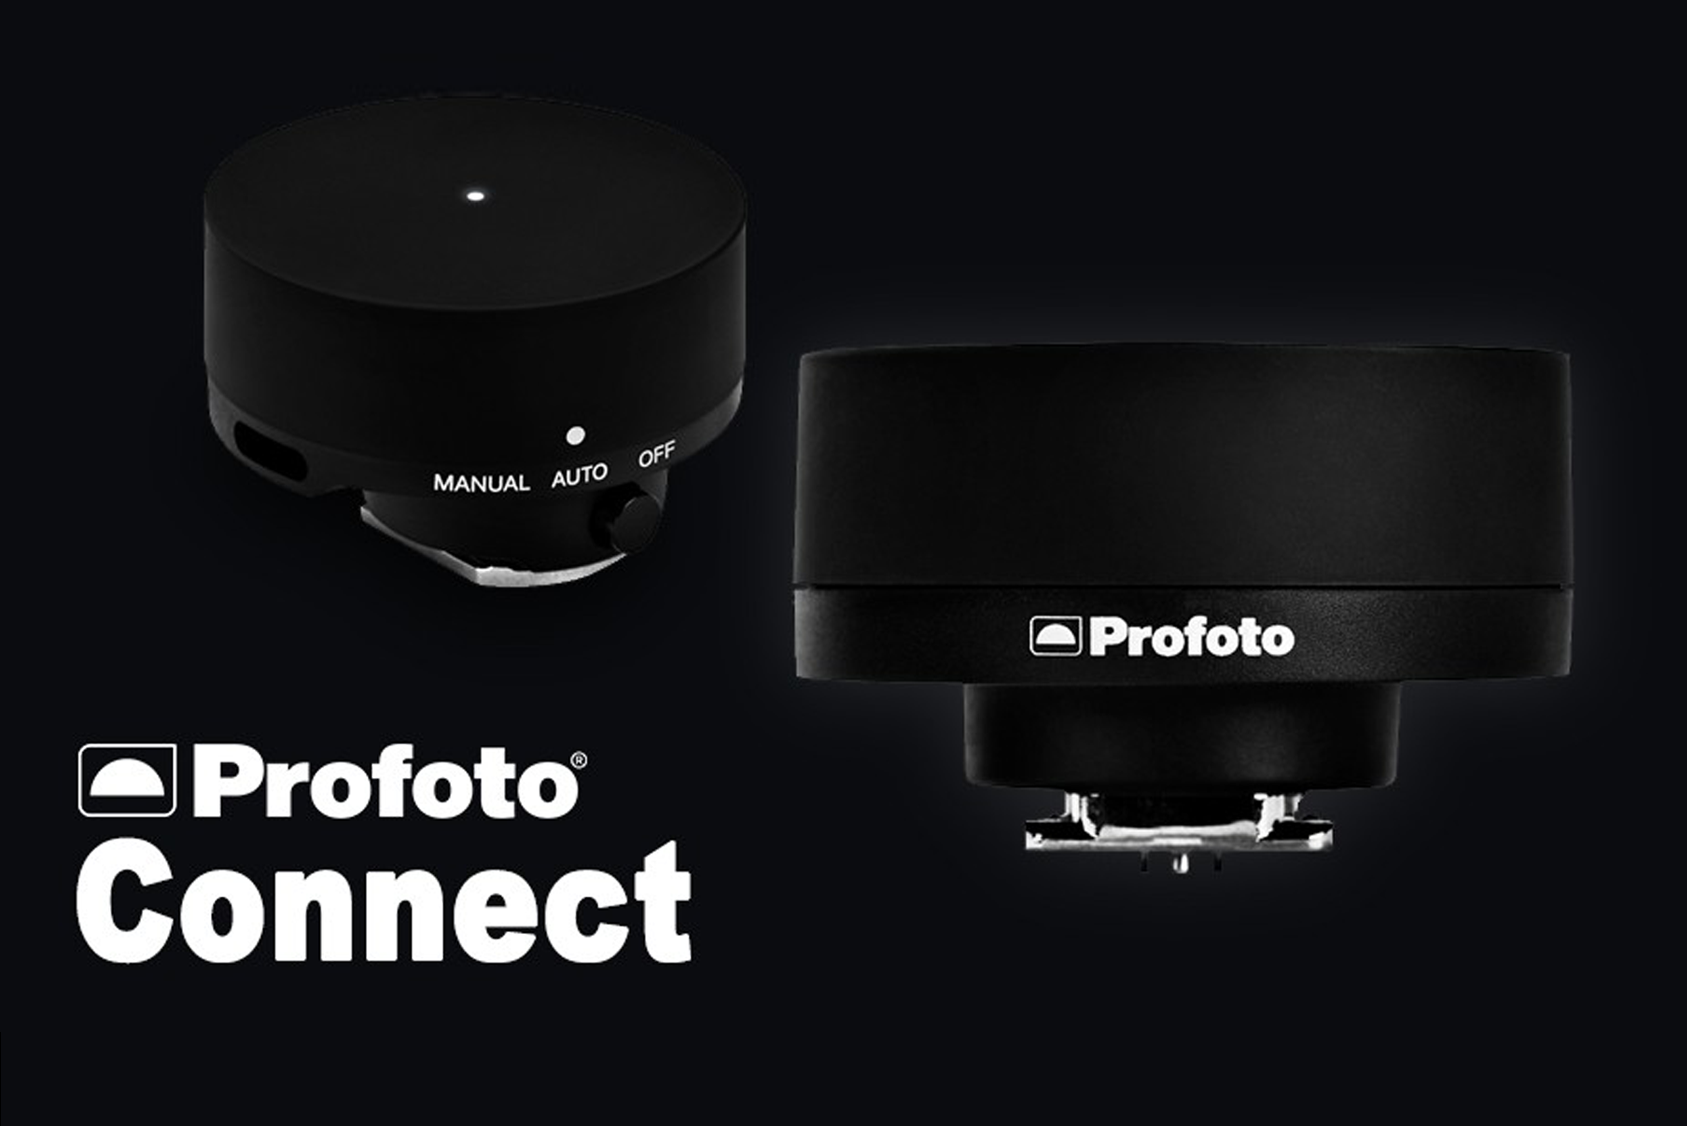 profoto_connect-button-free-trigger